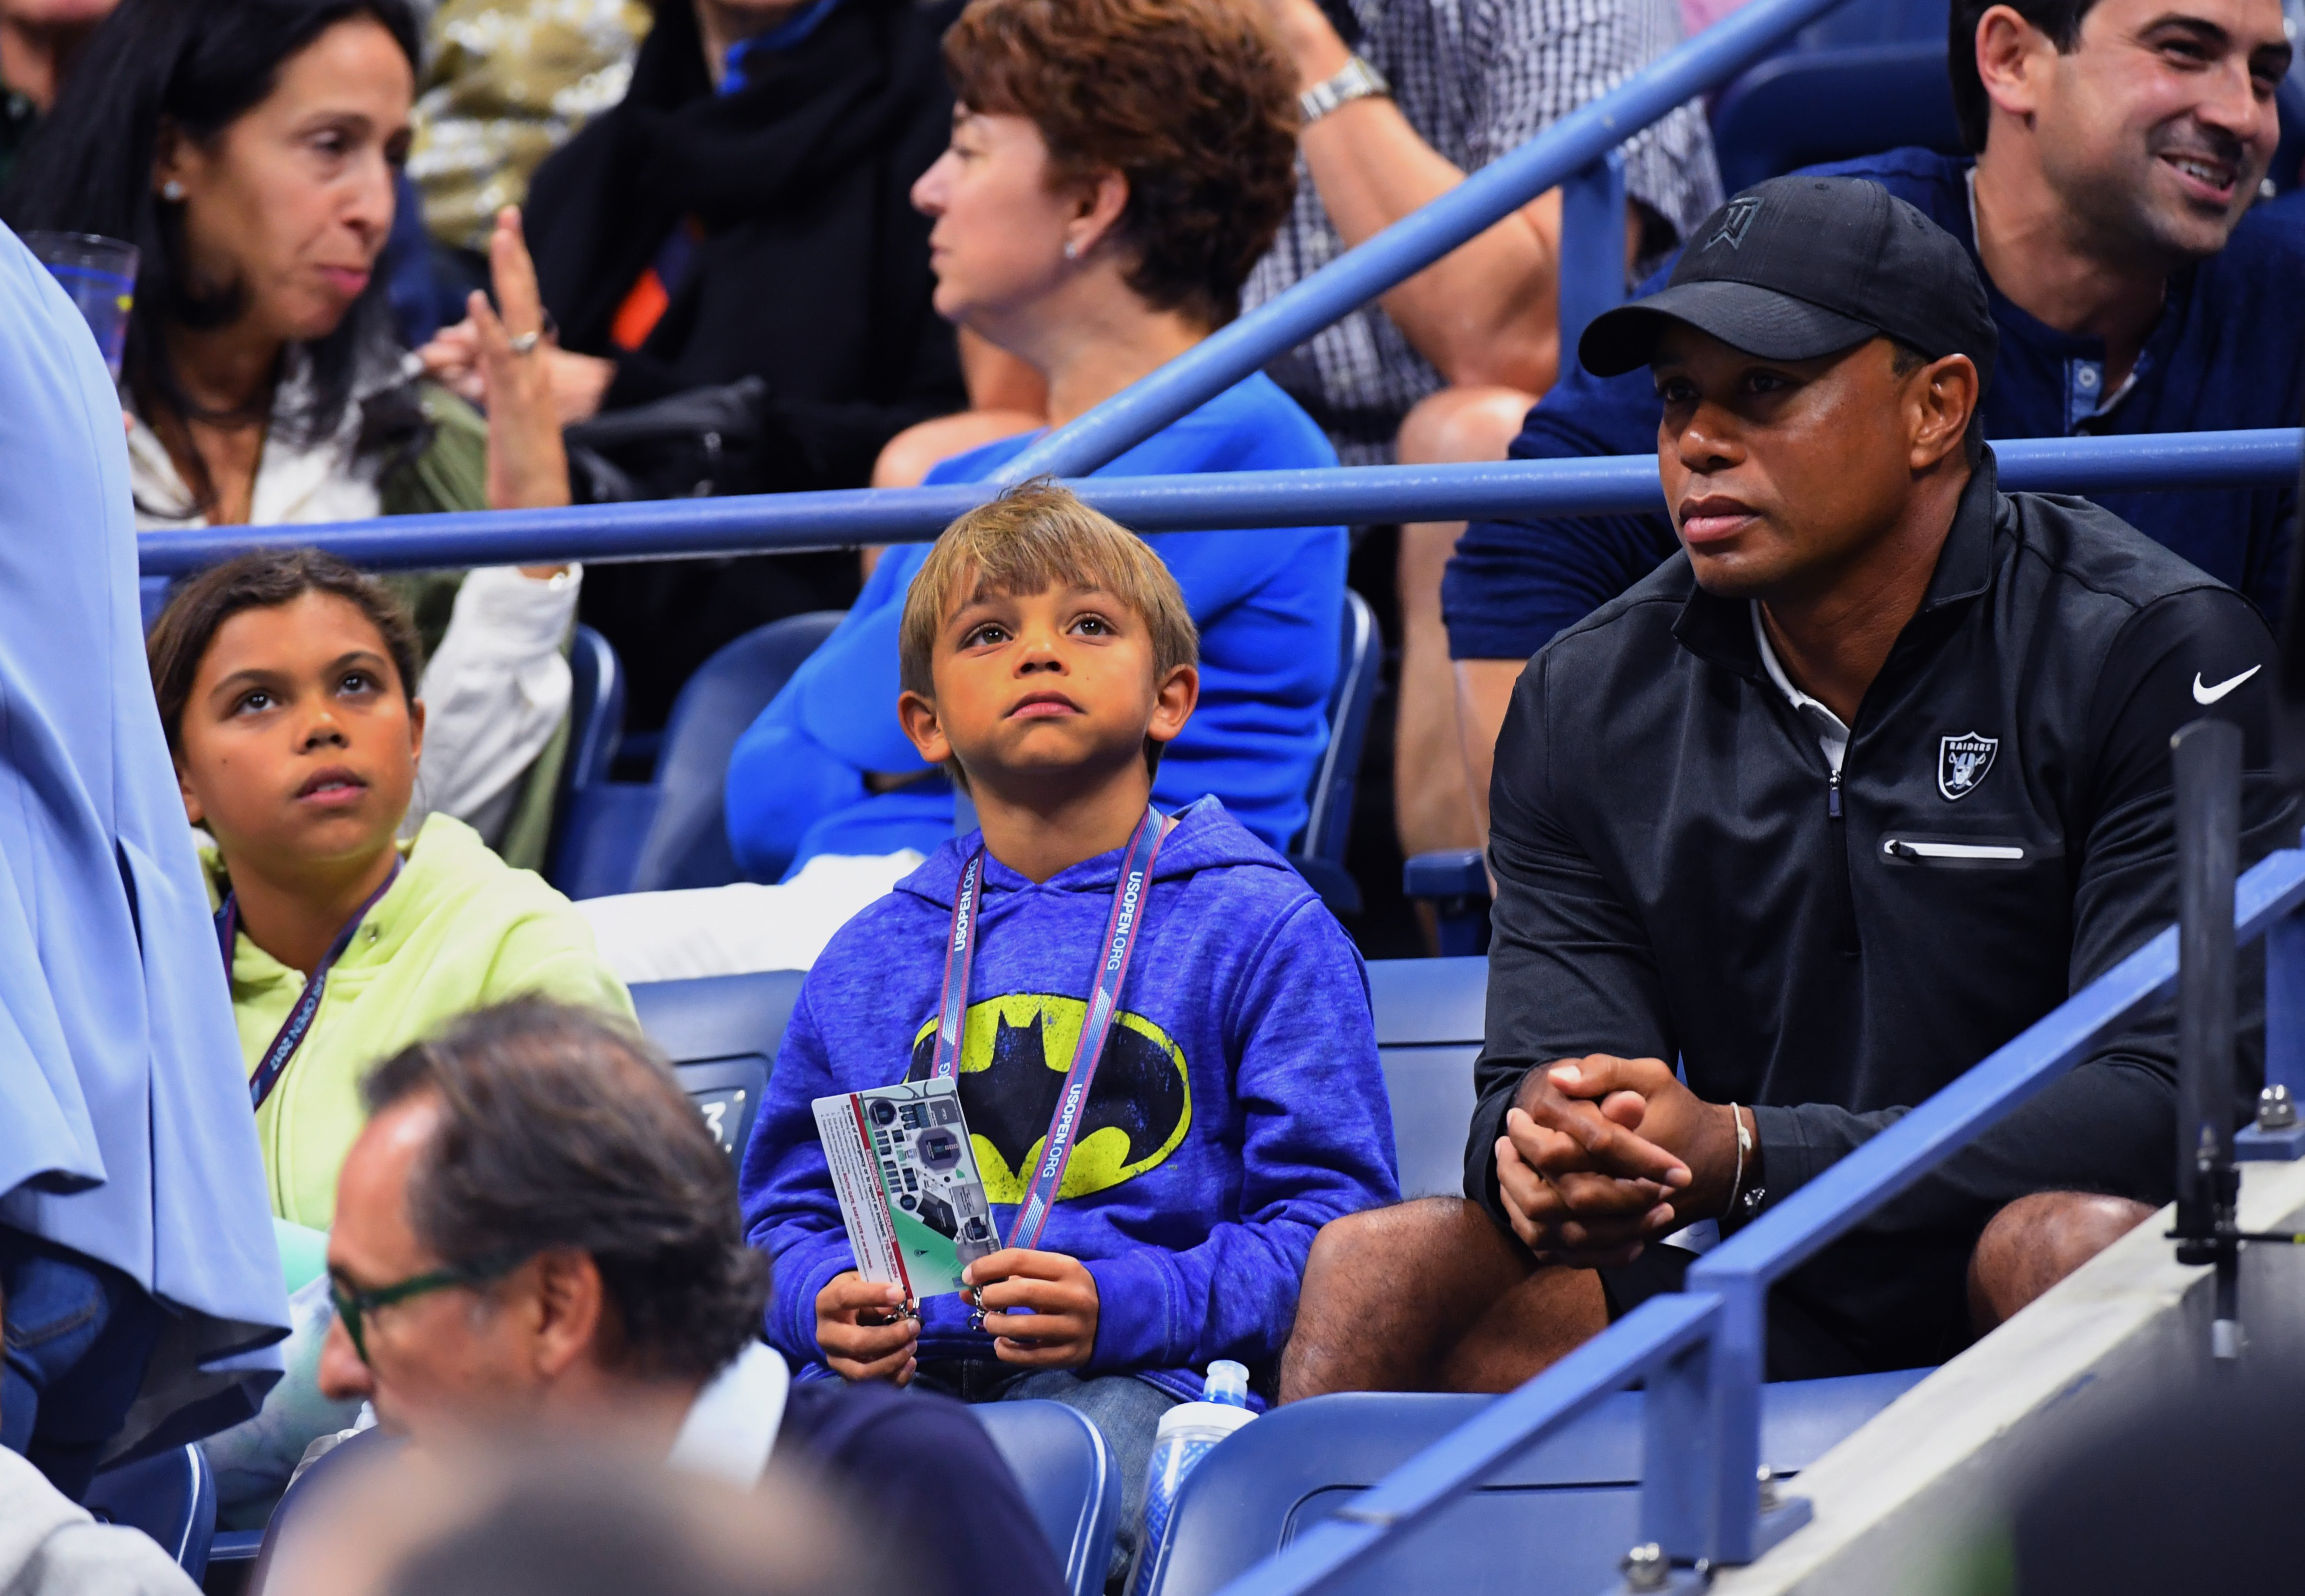 Tiger Woods and son Charlie to compete together at next month's PNC Championship